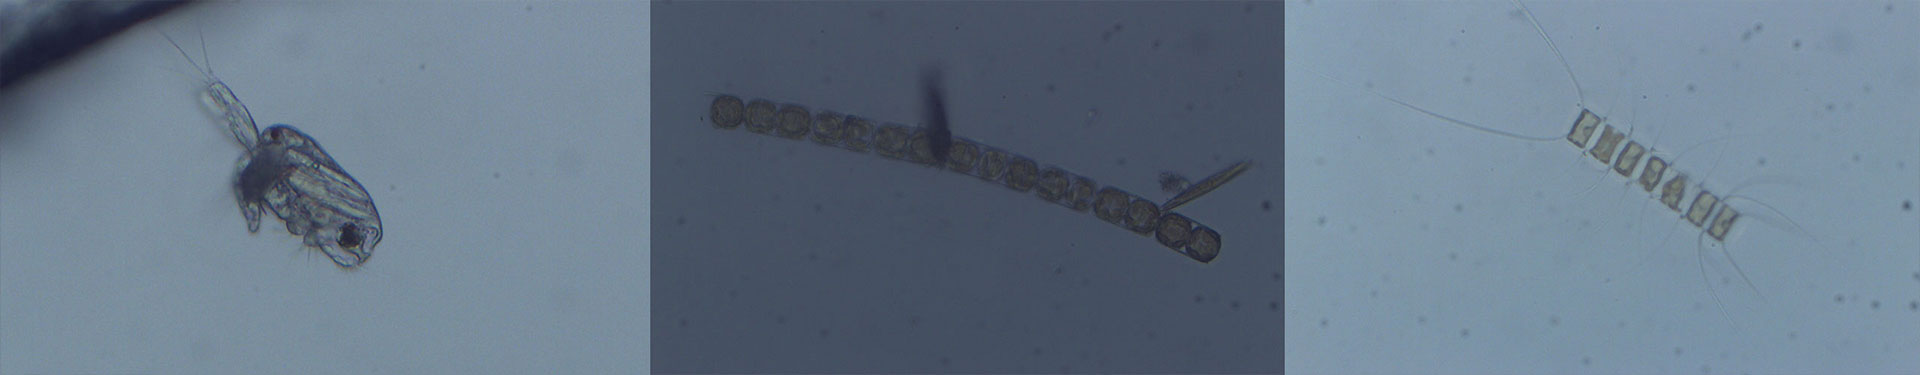 Tulalip Natural Resources Department image of microscopic organism